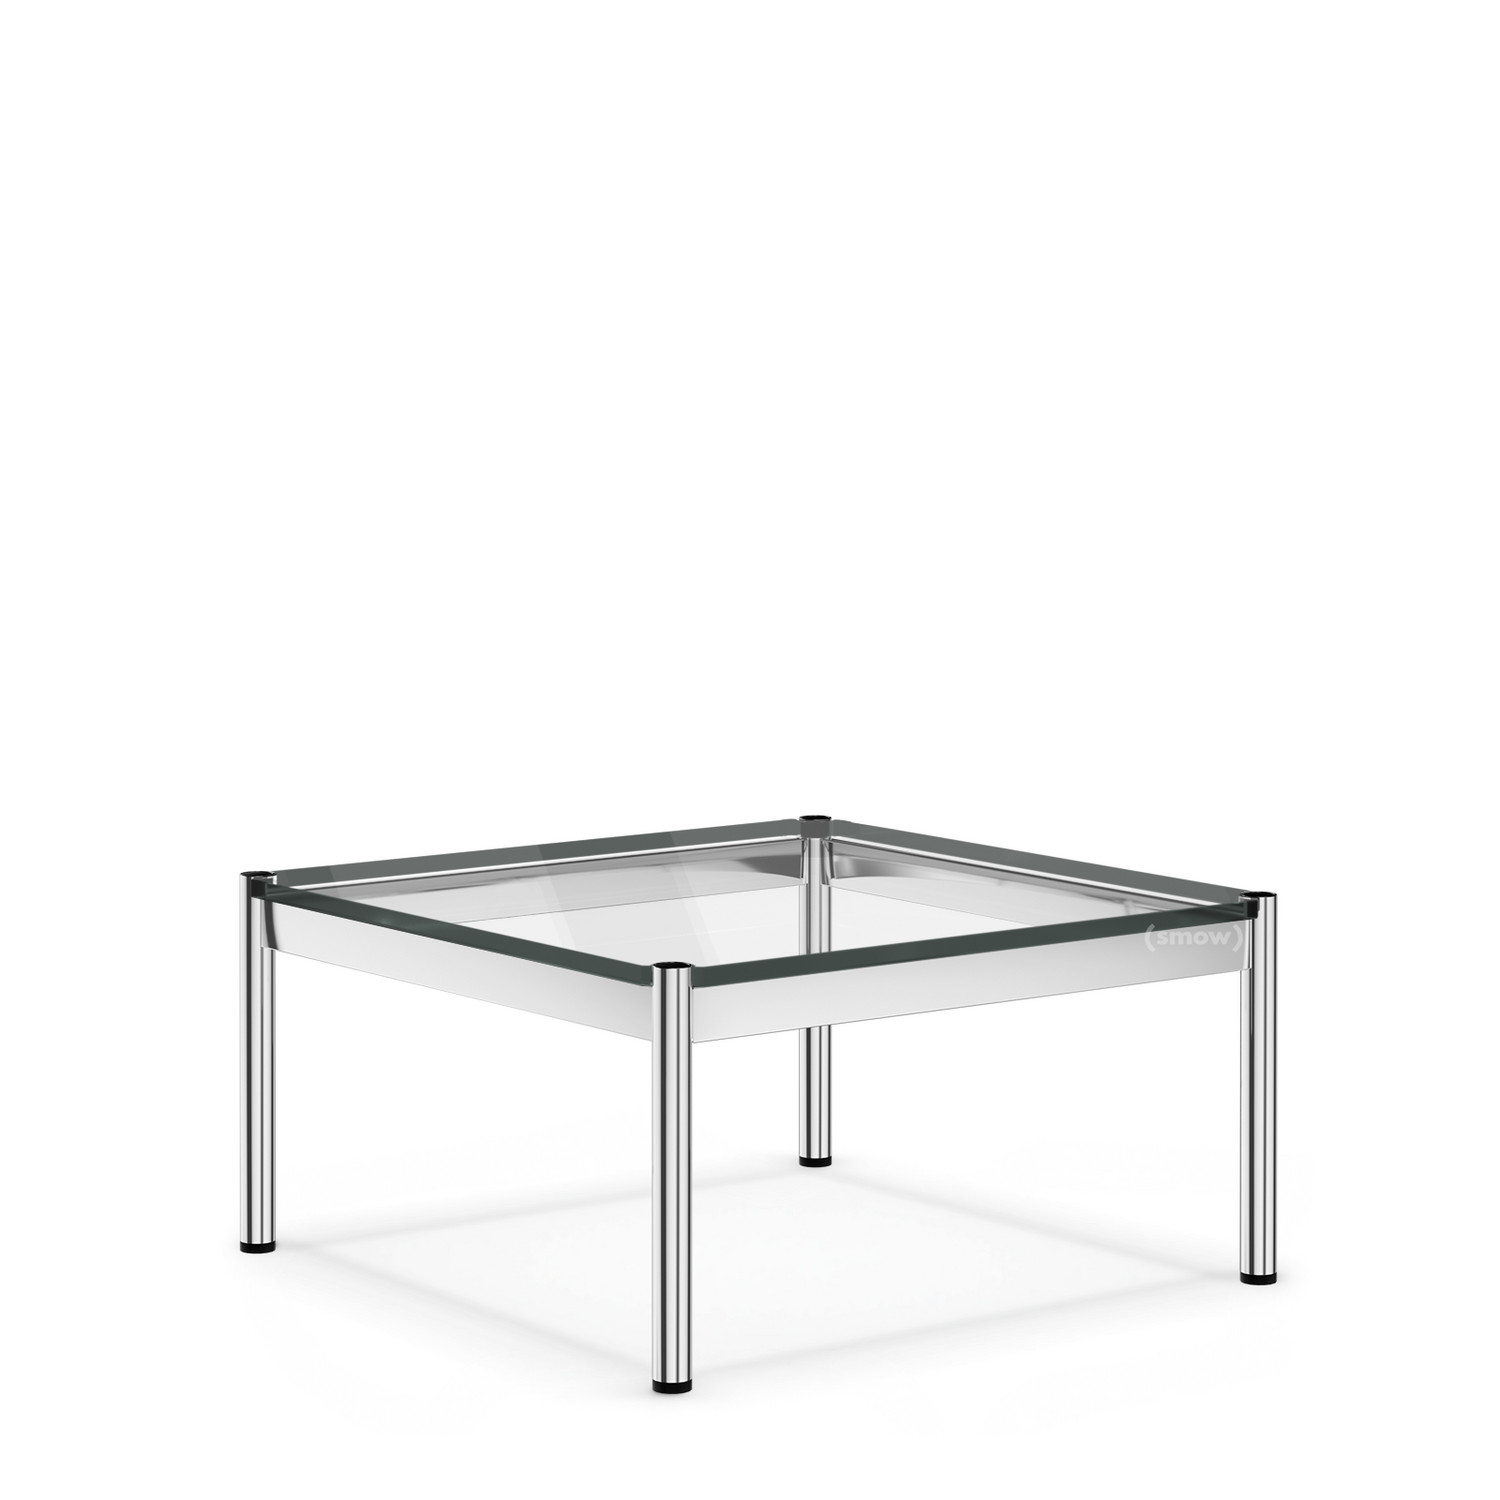 Couchtisch Montain Oak Usm Haller Coffee Table 75 X 75 Cm Glass Transparent By Fritz